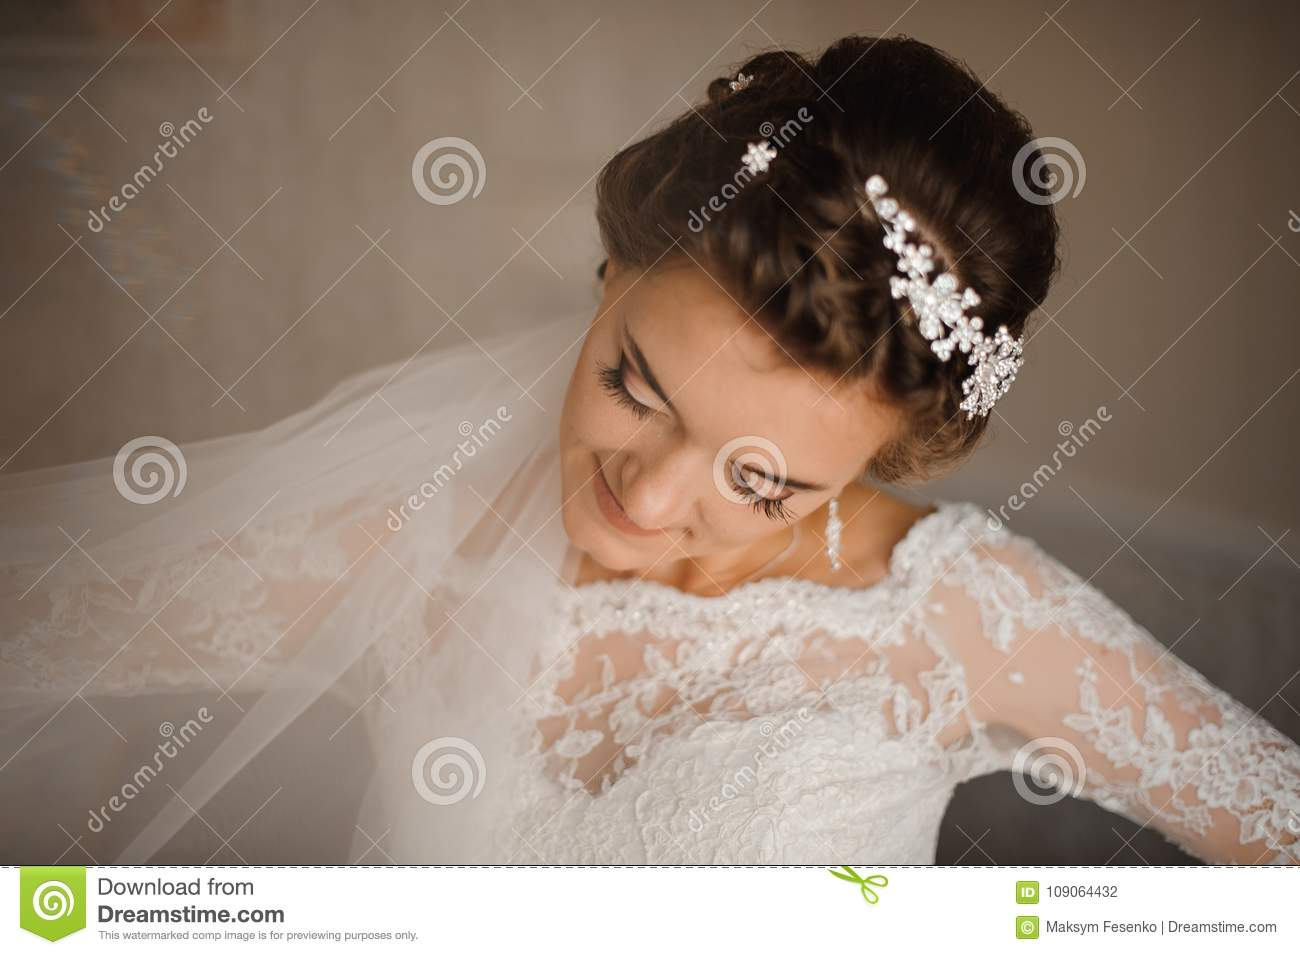 Bride in a white dress and veil is standing with her head bowed